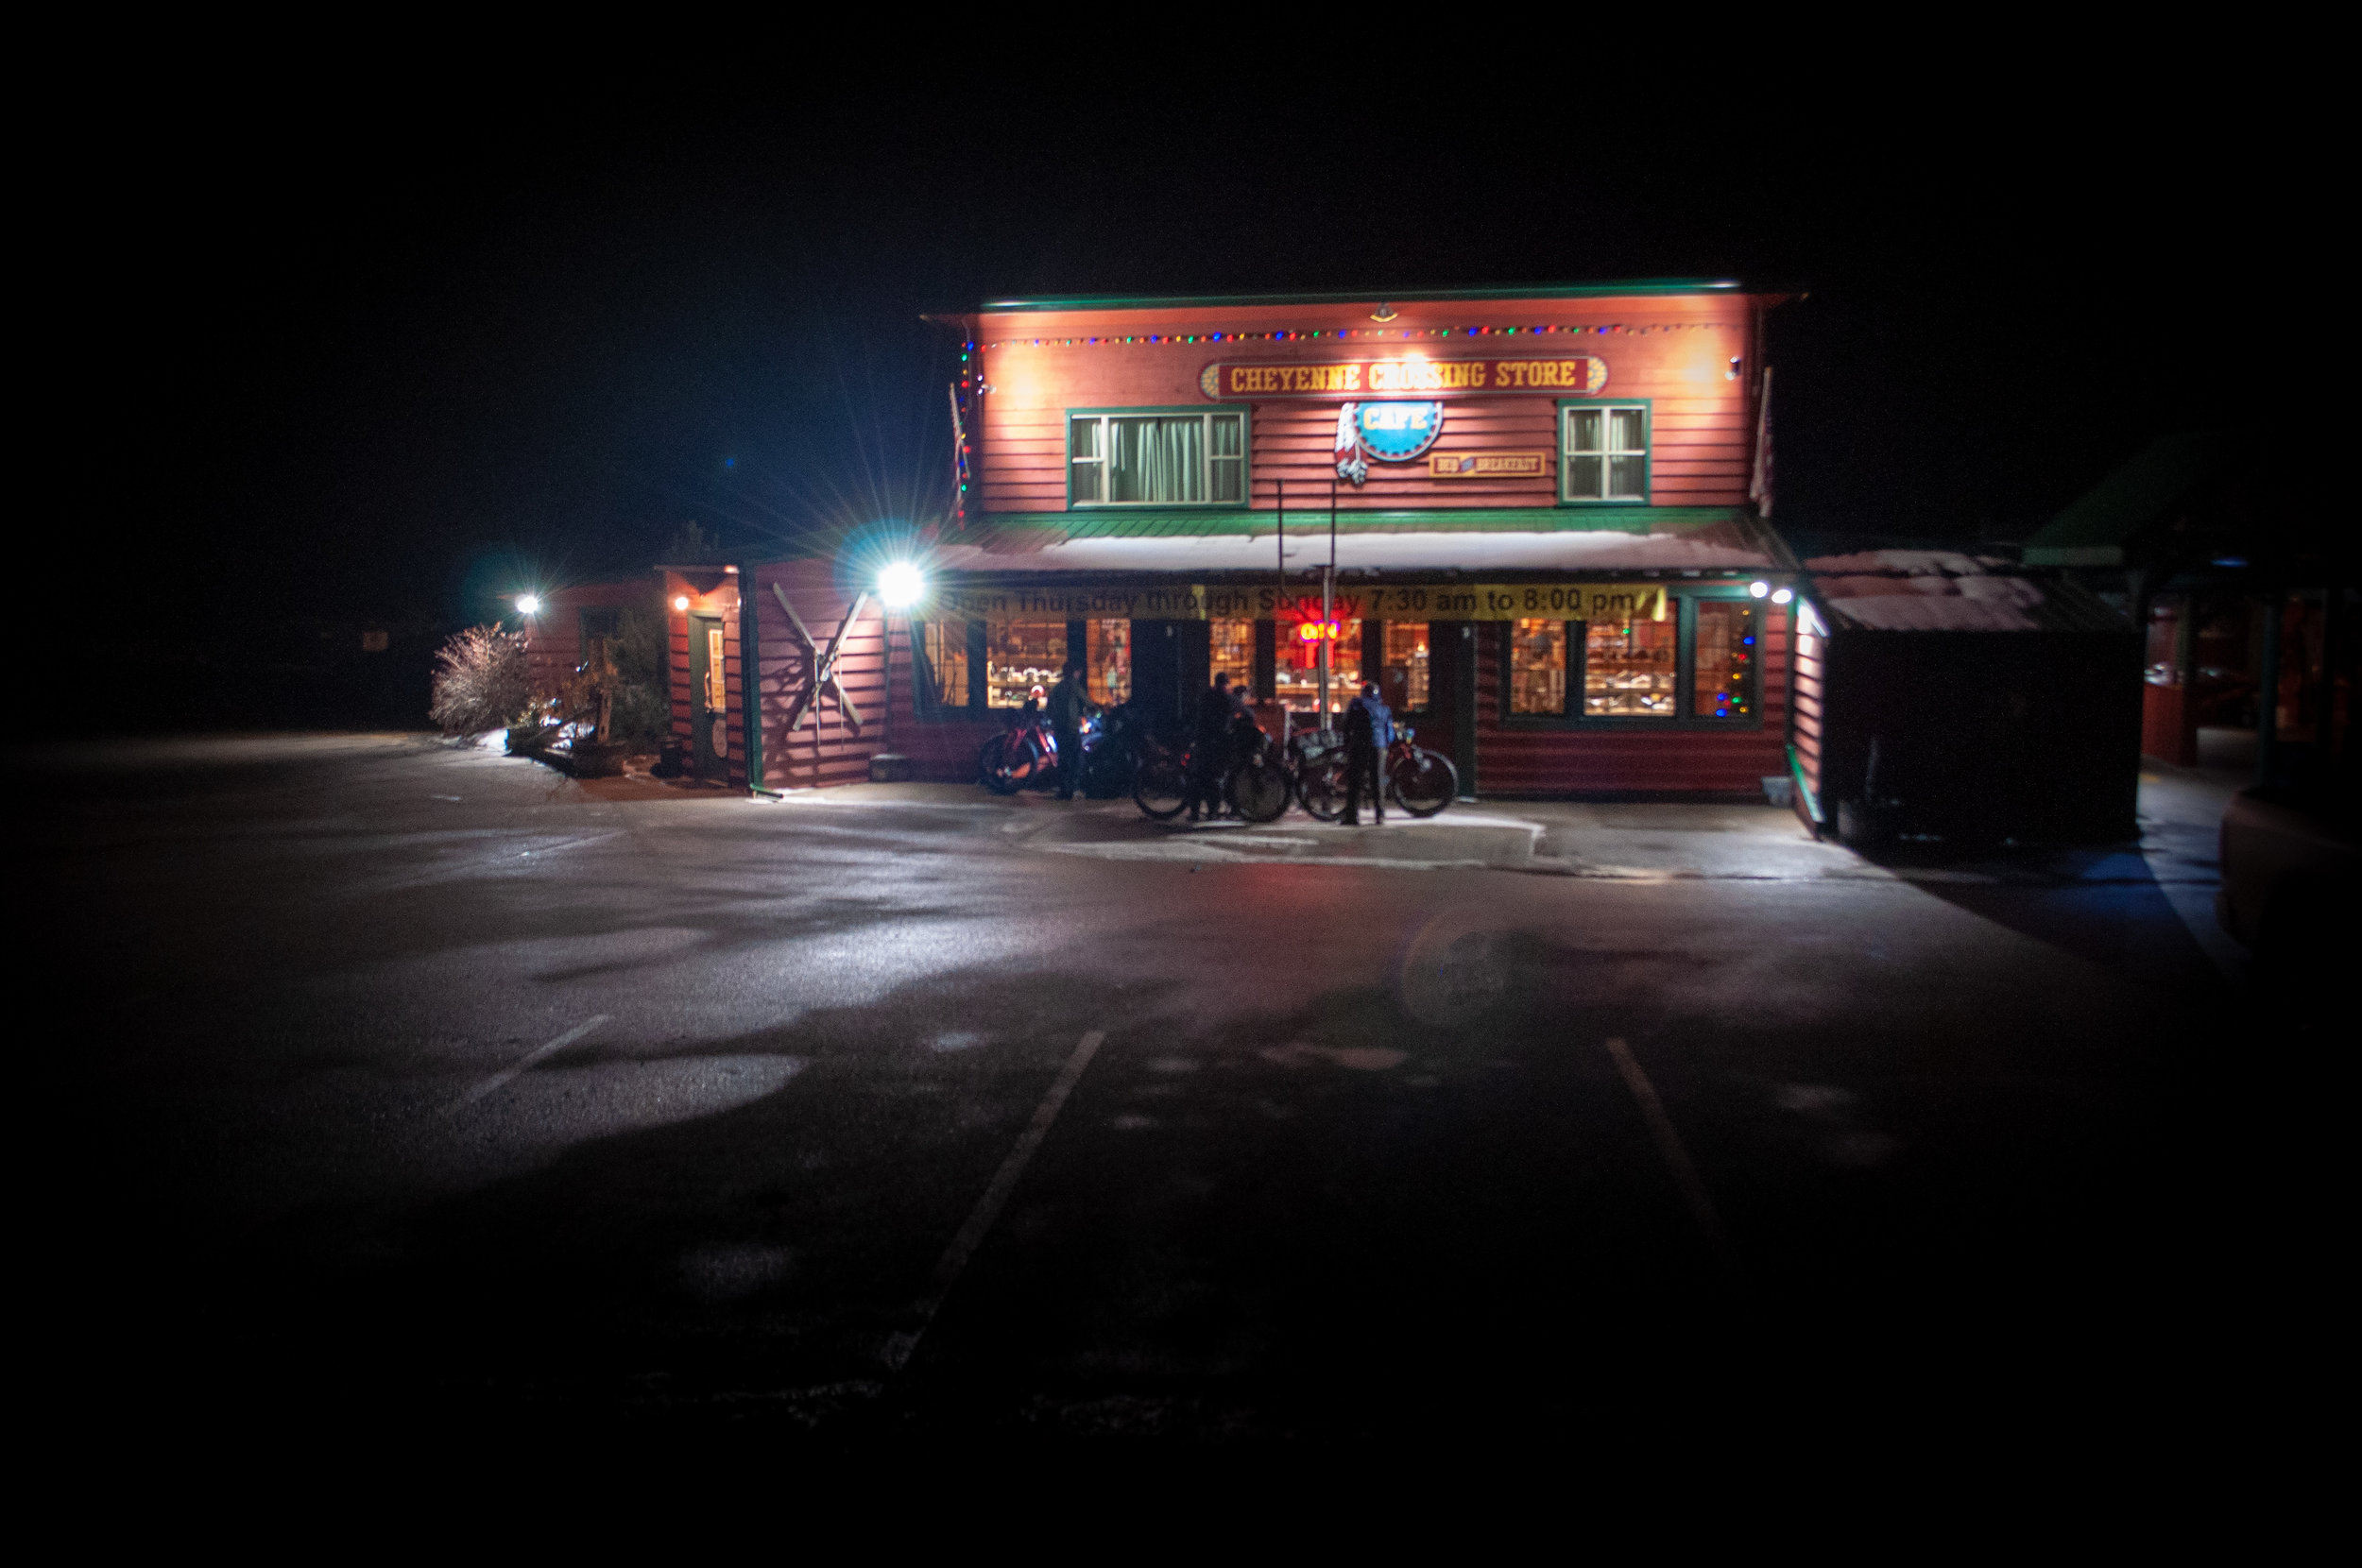 A group of fat bike riders standing in front of a small general store in the dark